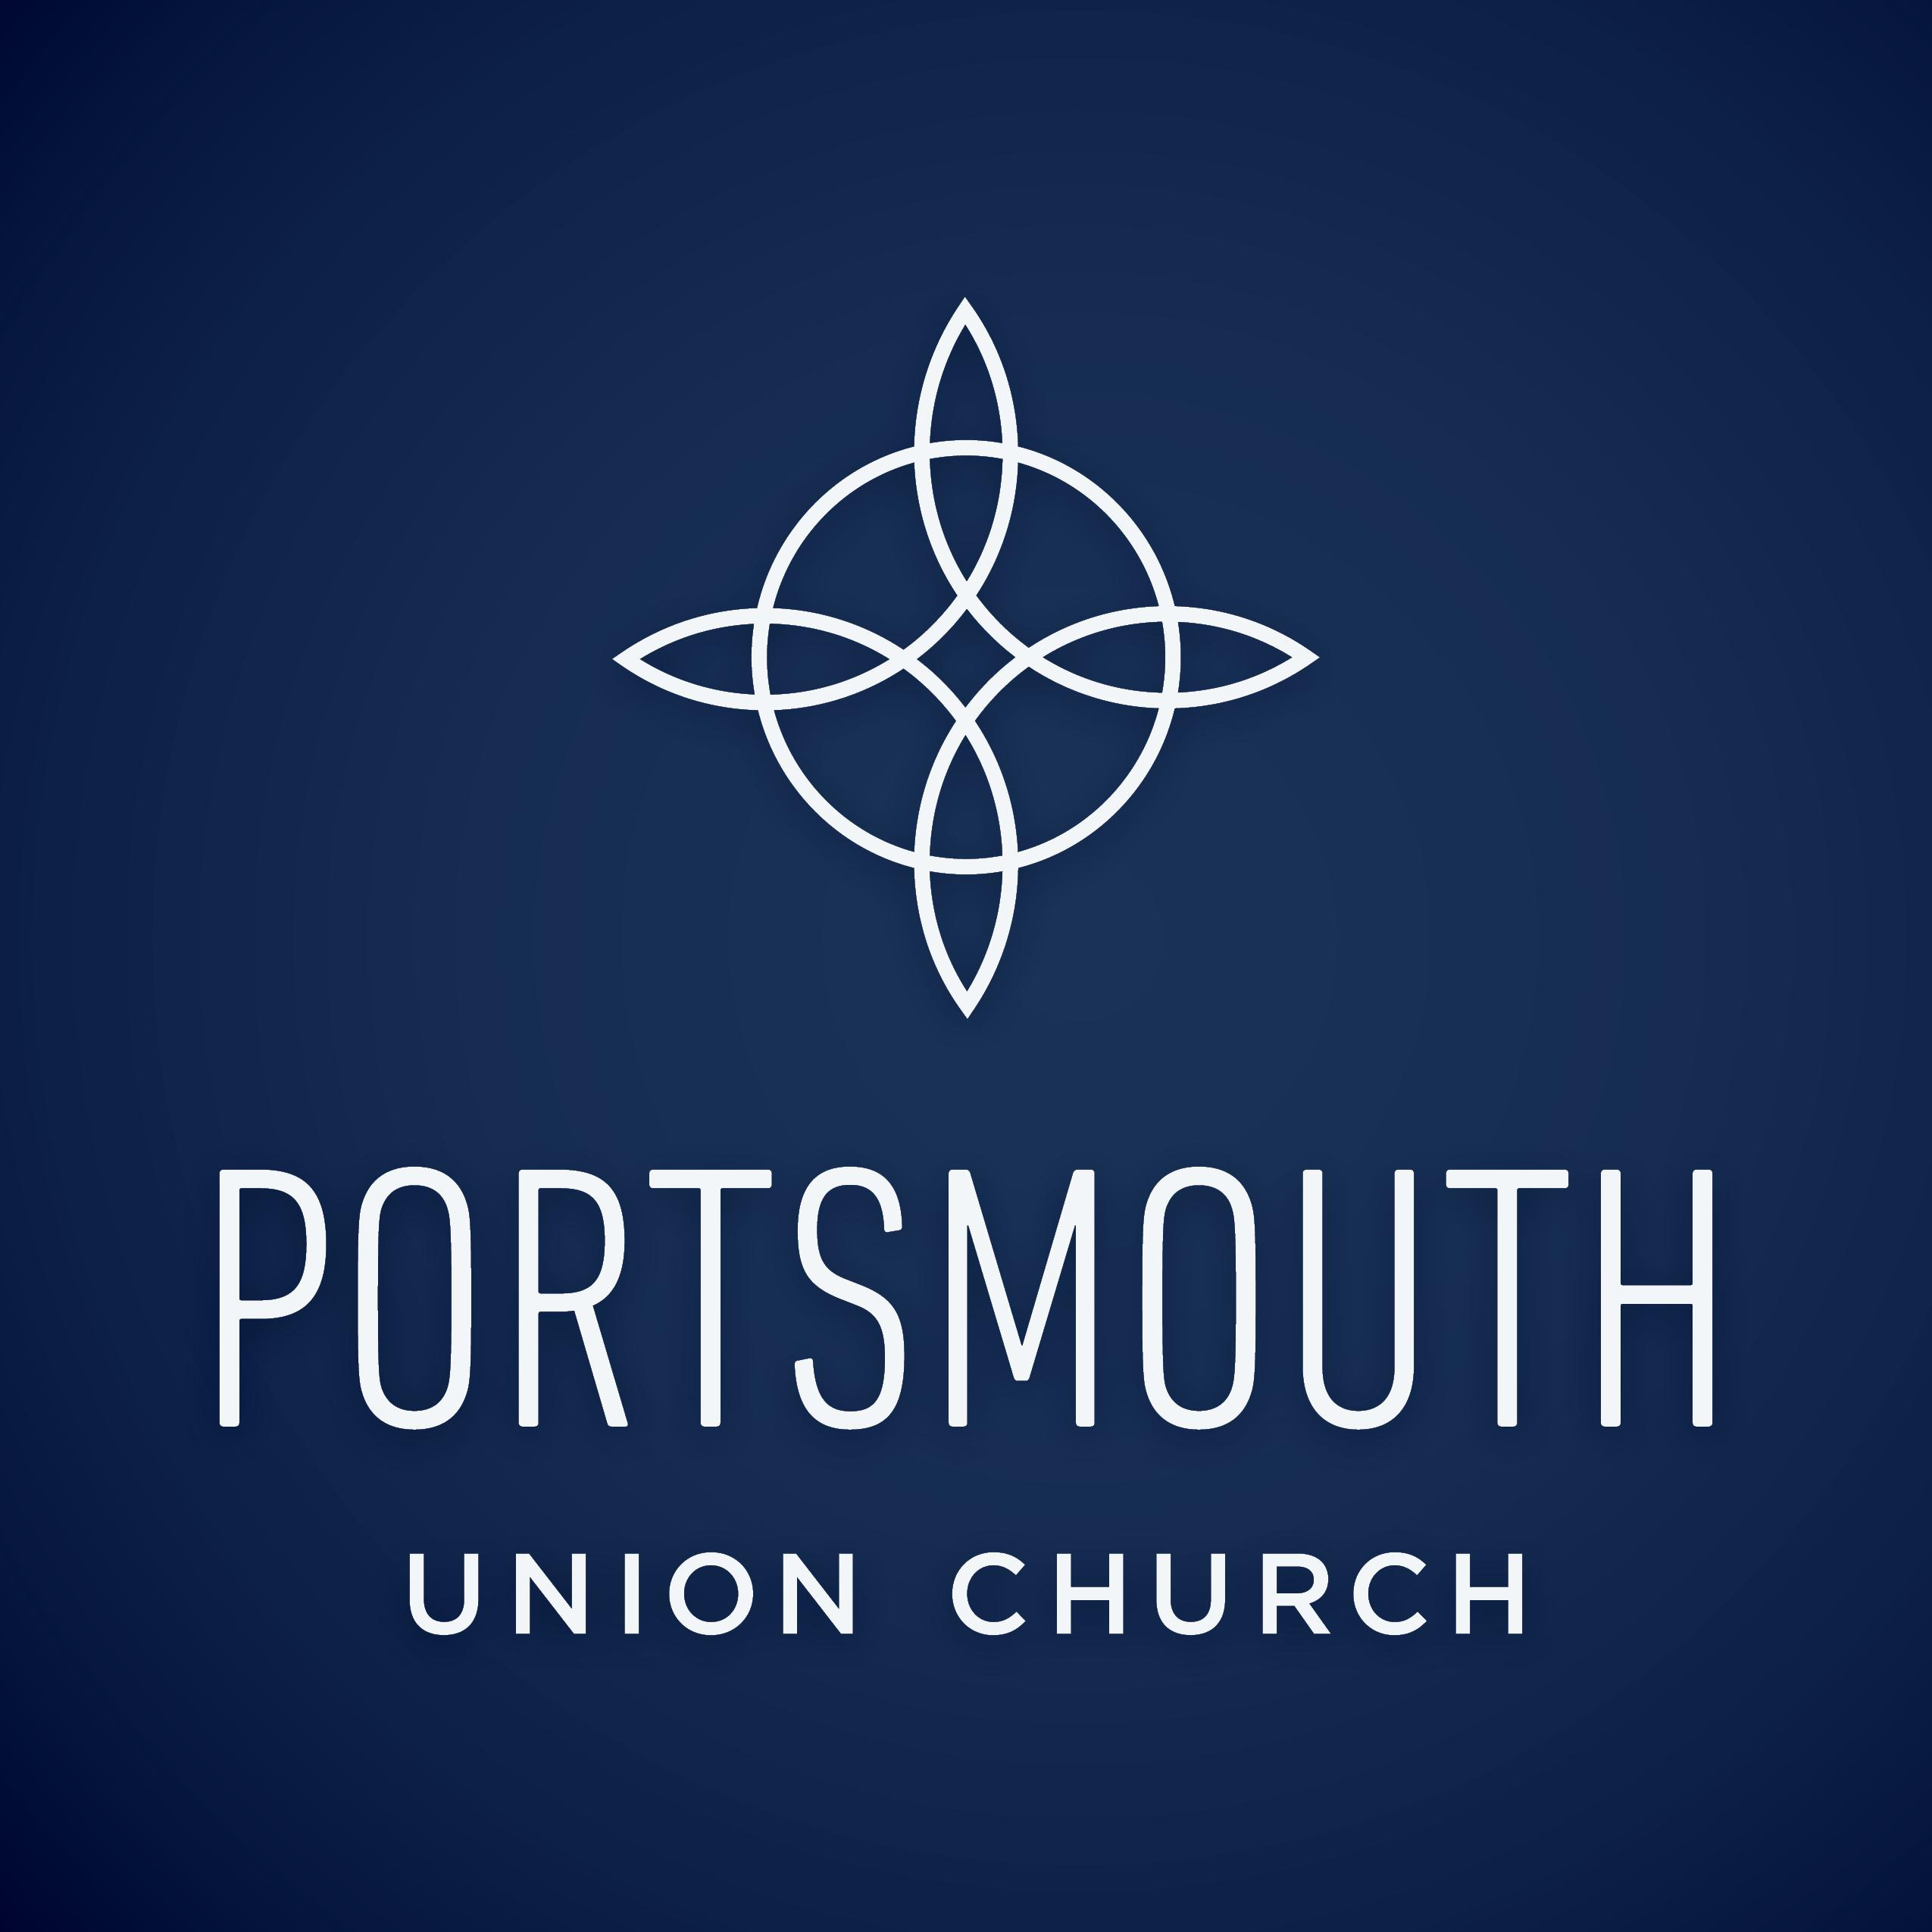 Portsmouth Union Church